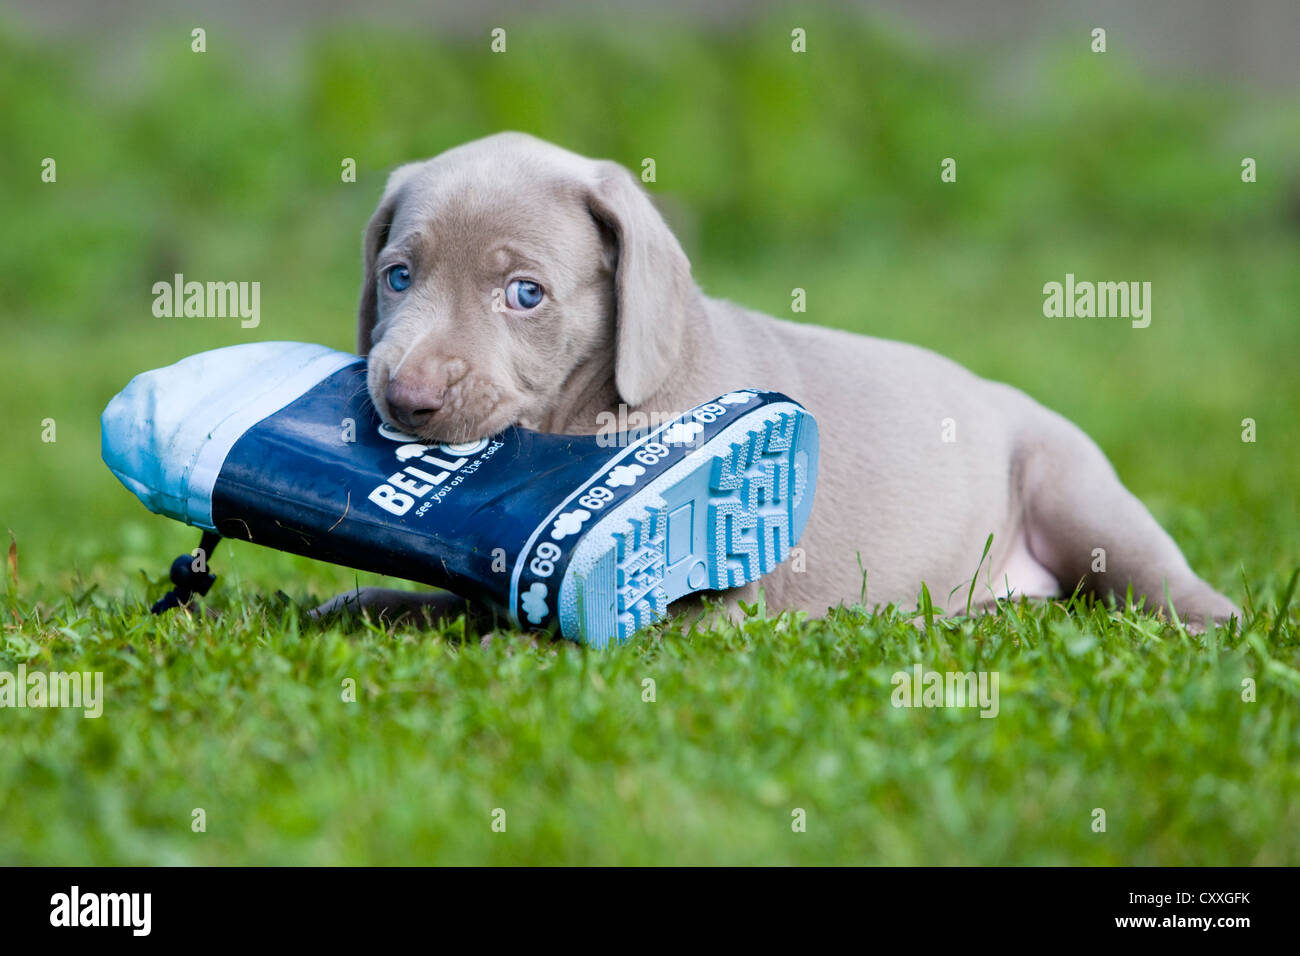 Weimaraner dog, puppy, playing with a rubber boot, North Tyrol, Austria, Europe Stock Photo